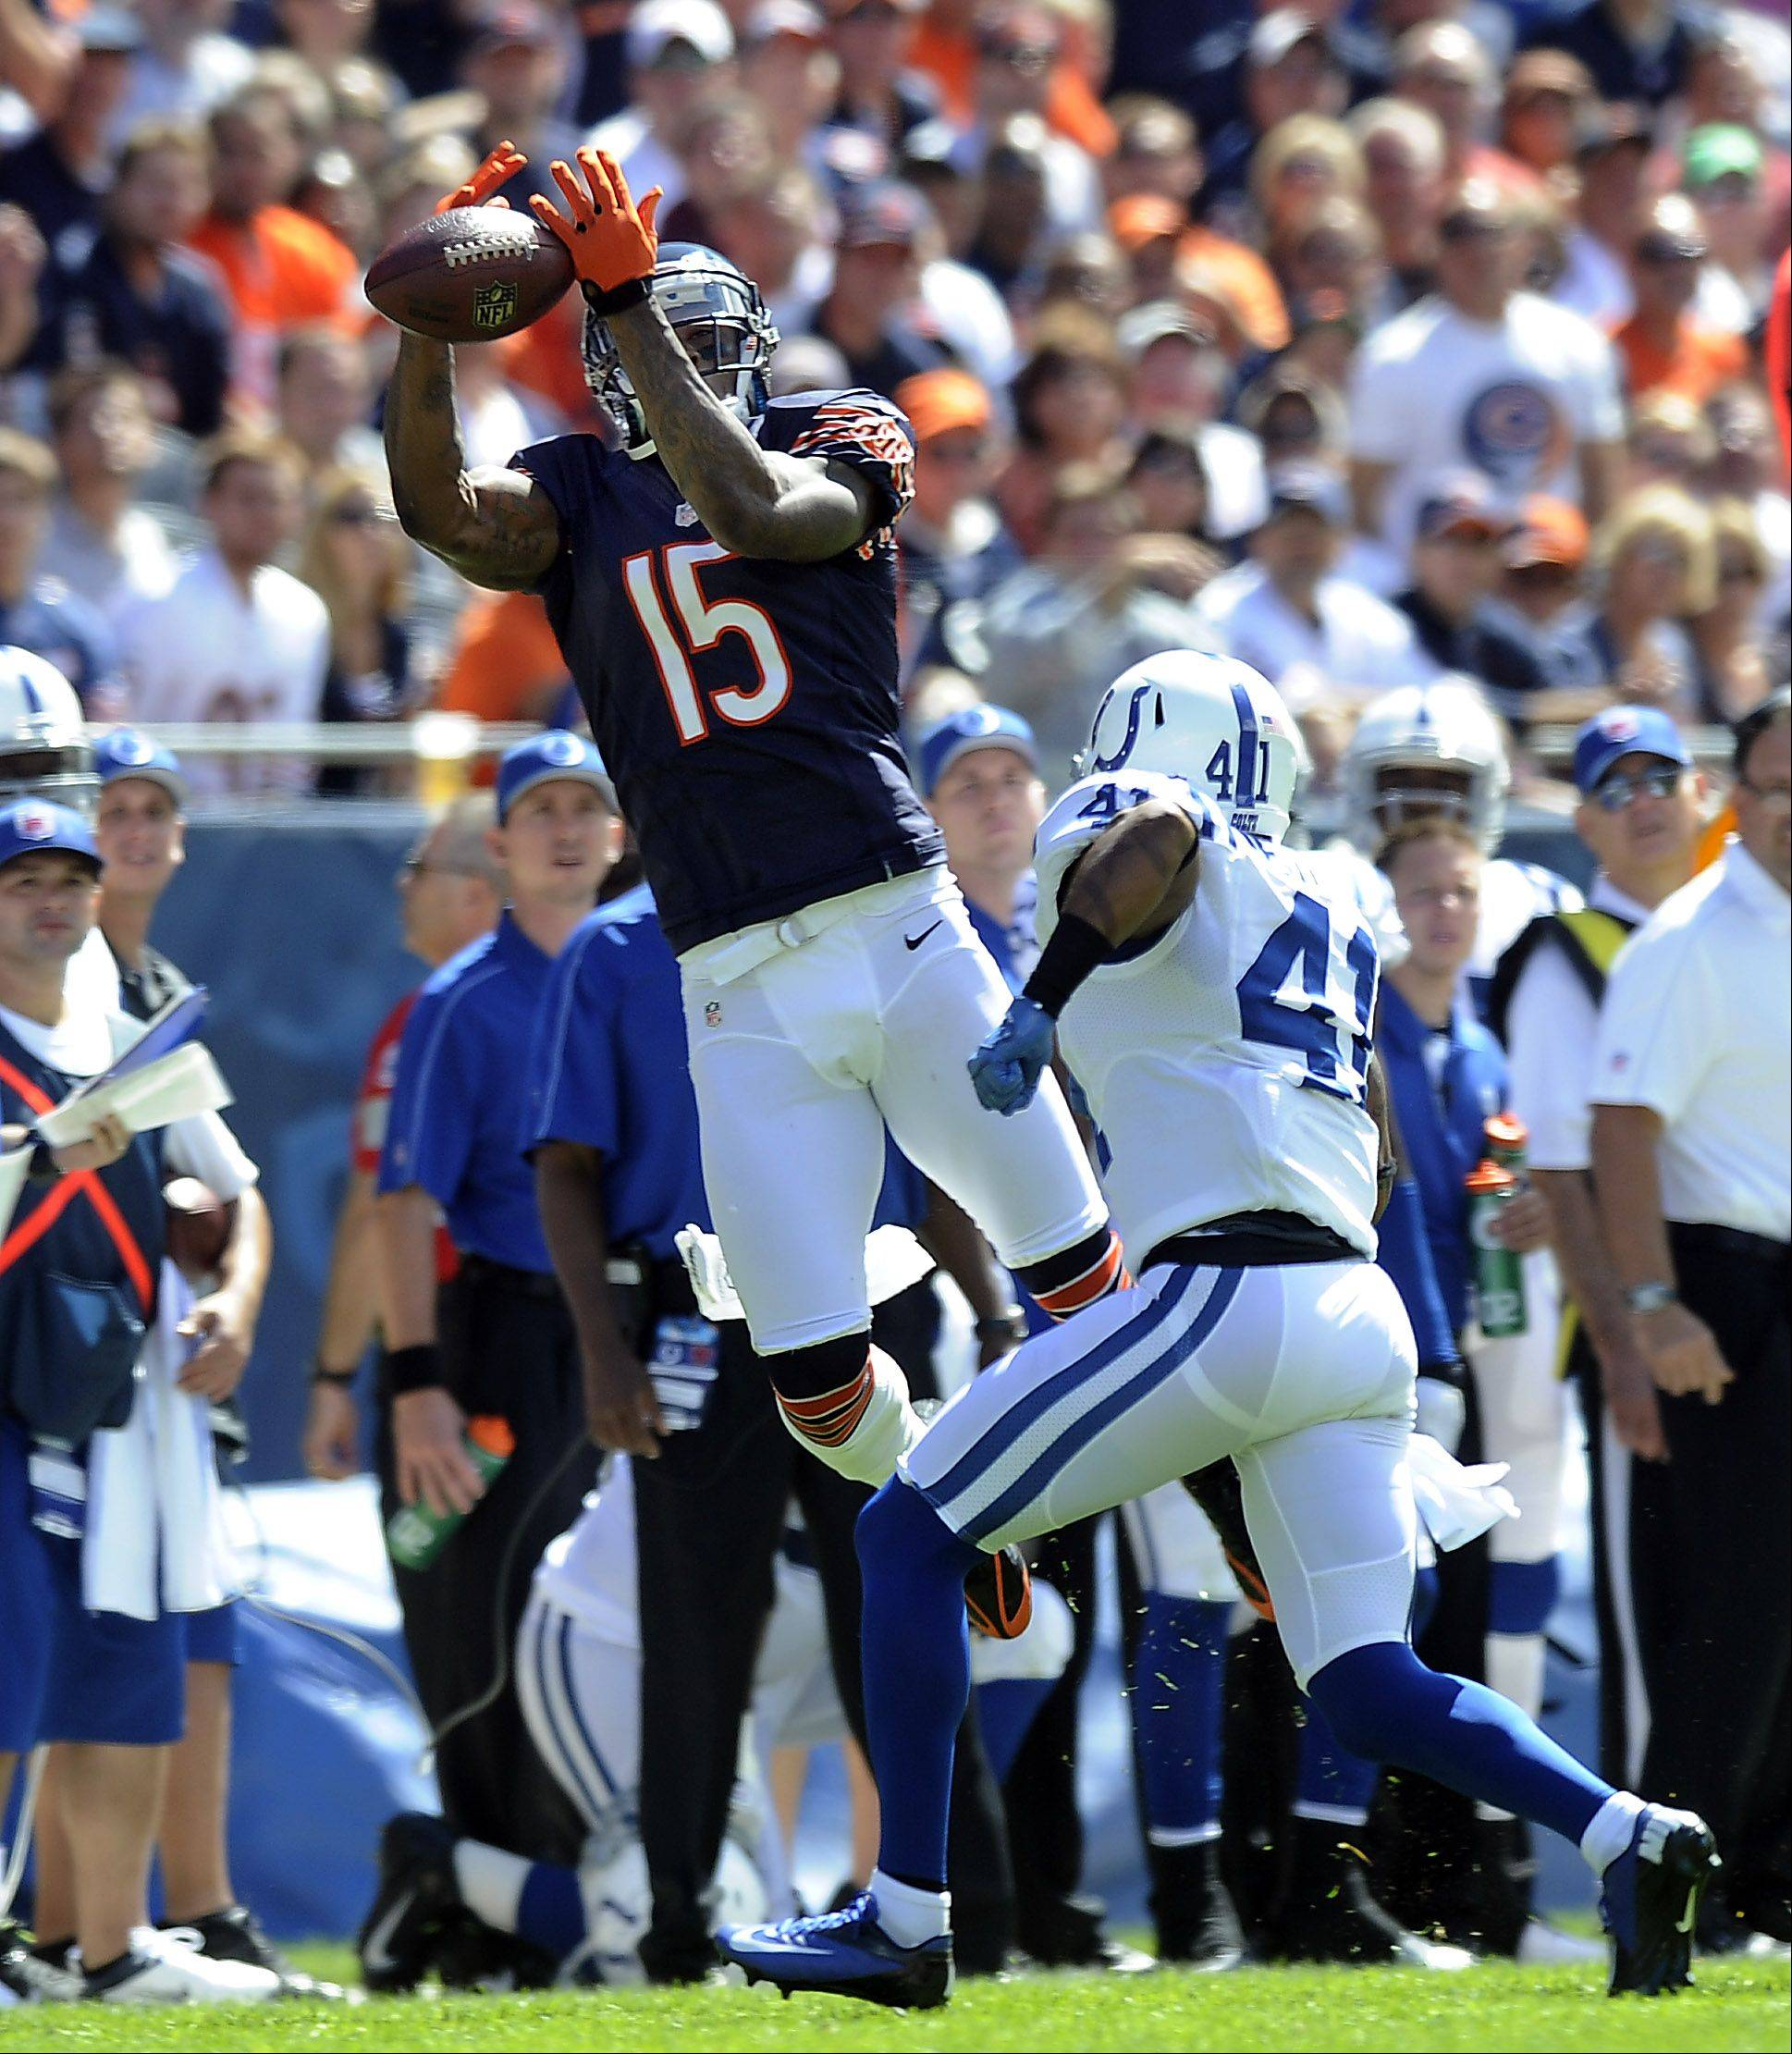 Mark Welsh/mwelsh@dailyherald.com Bears reciever Brandon Marshall lets this first quarter pass slips through his fingers during the Bears home opener at Soldier Field in Chicago.